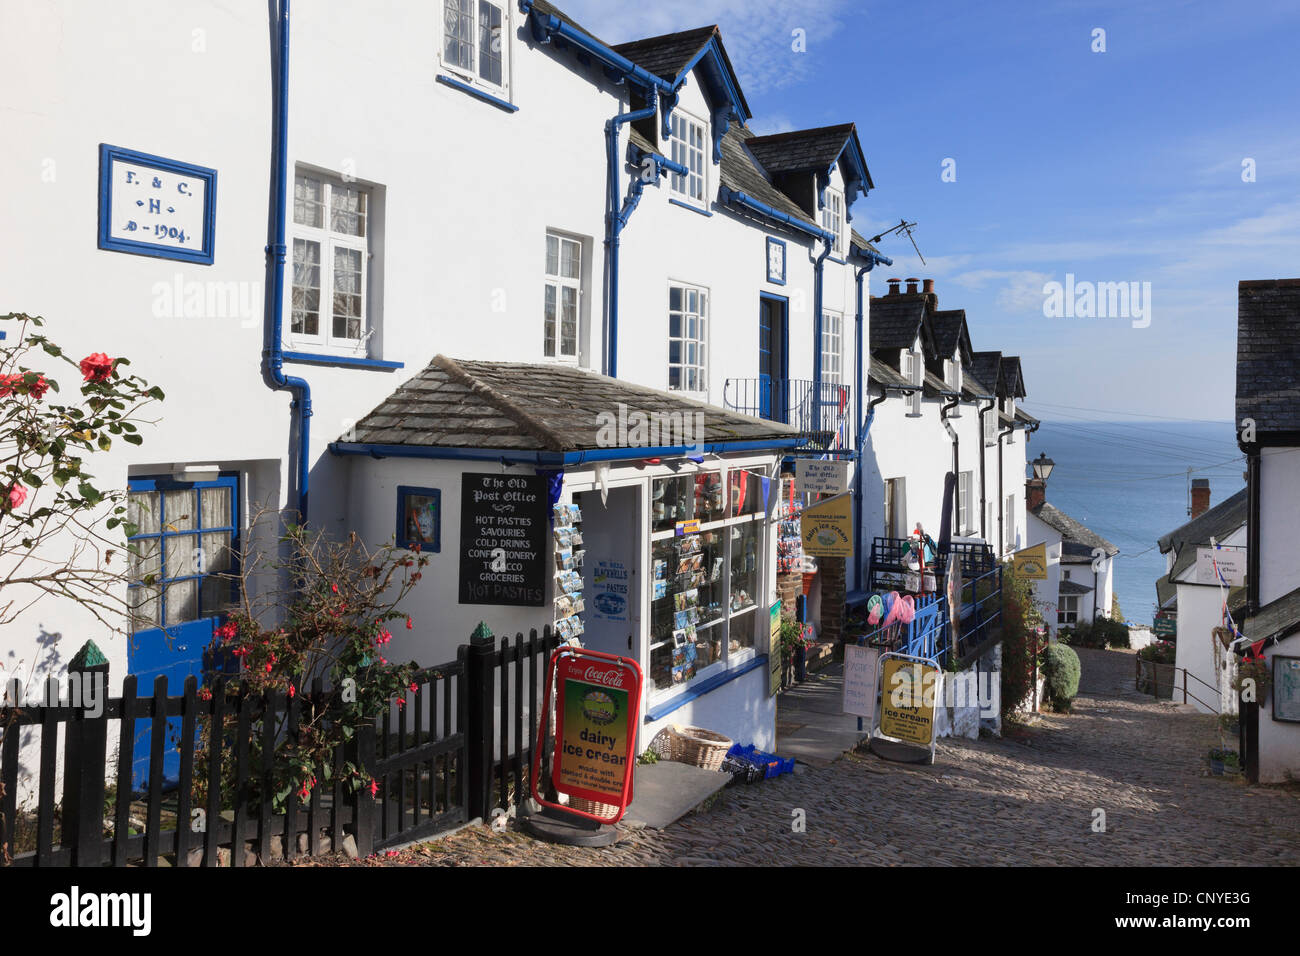 Local shop on steep narrow cobbled street in quaint picturesque village with view to the sea in Clovelly North Devon Stock Photo